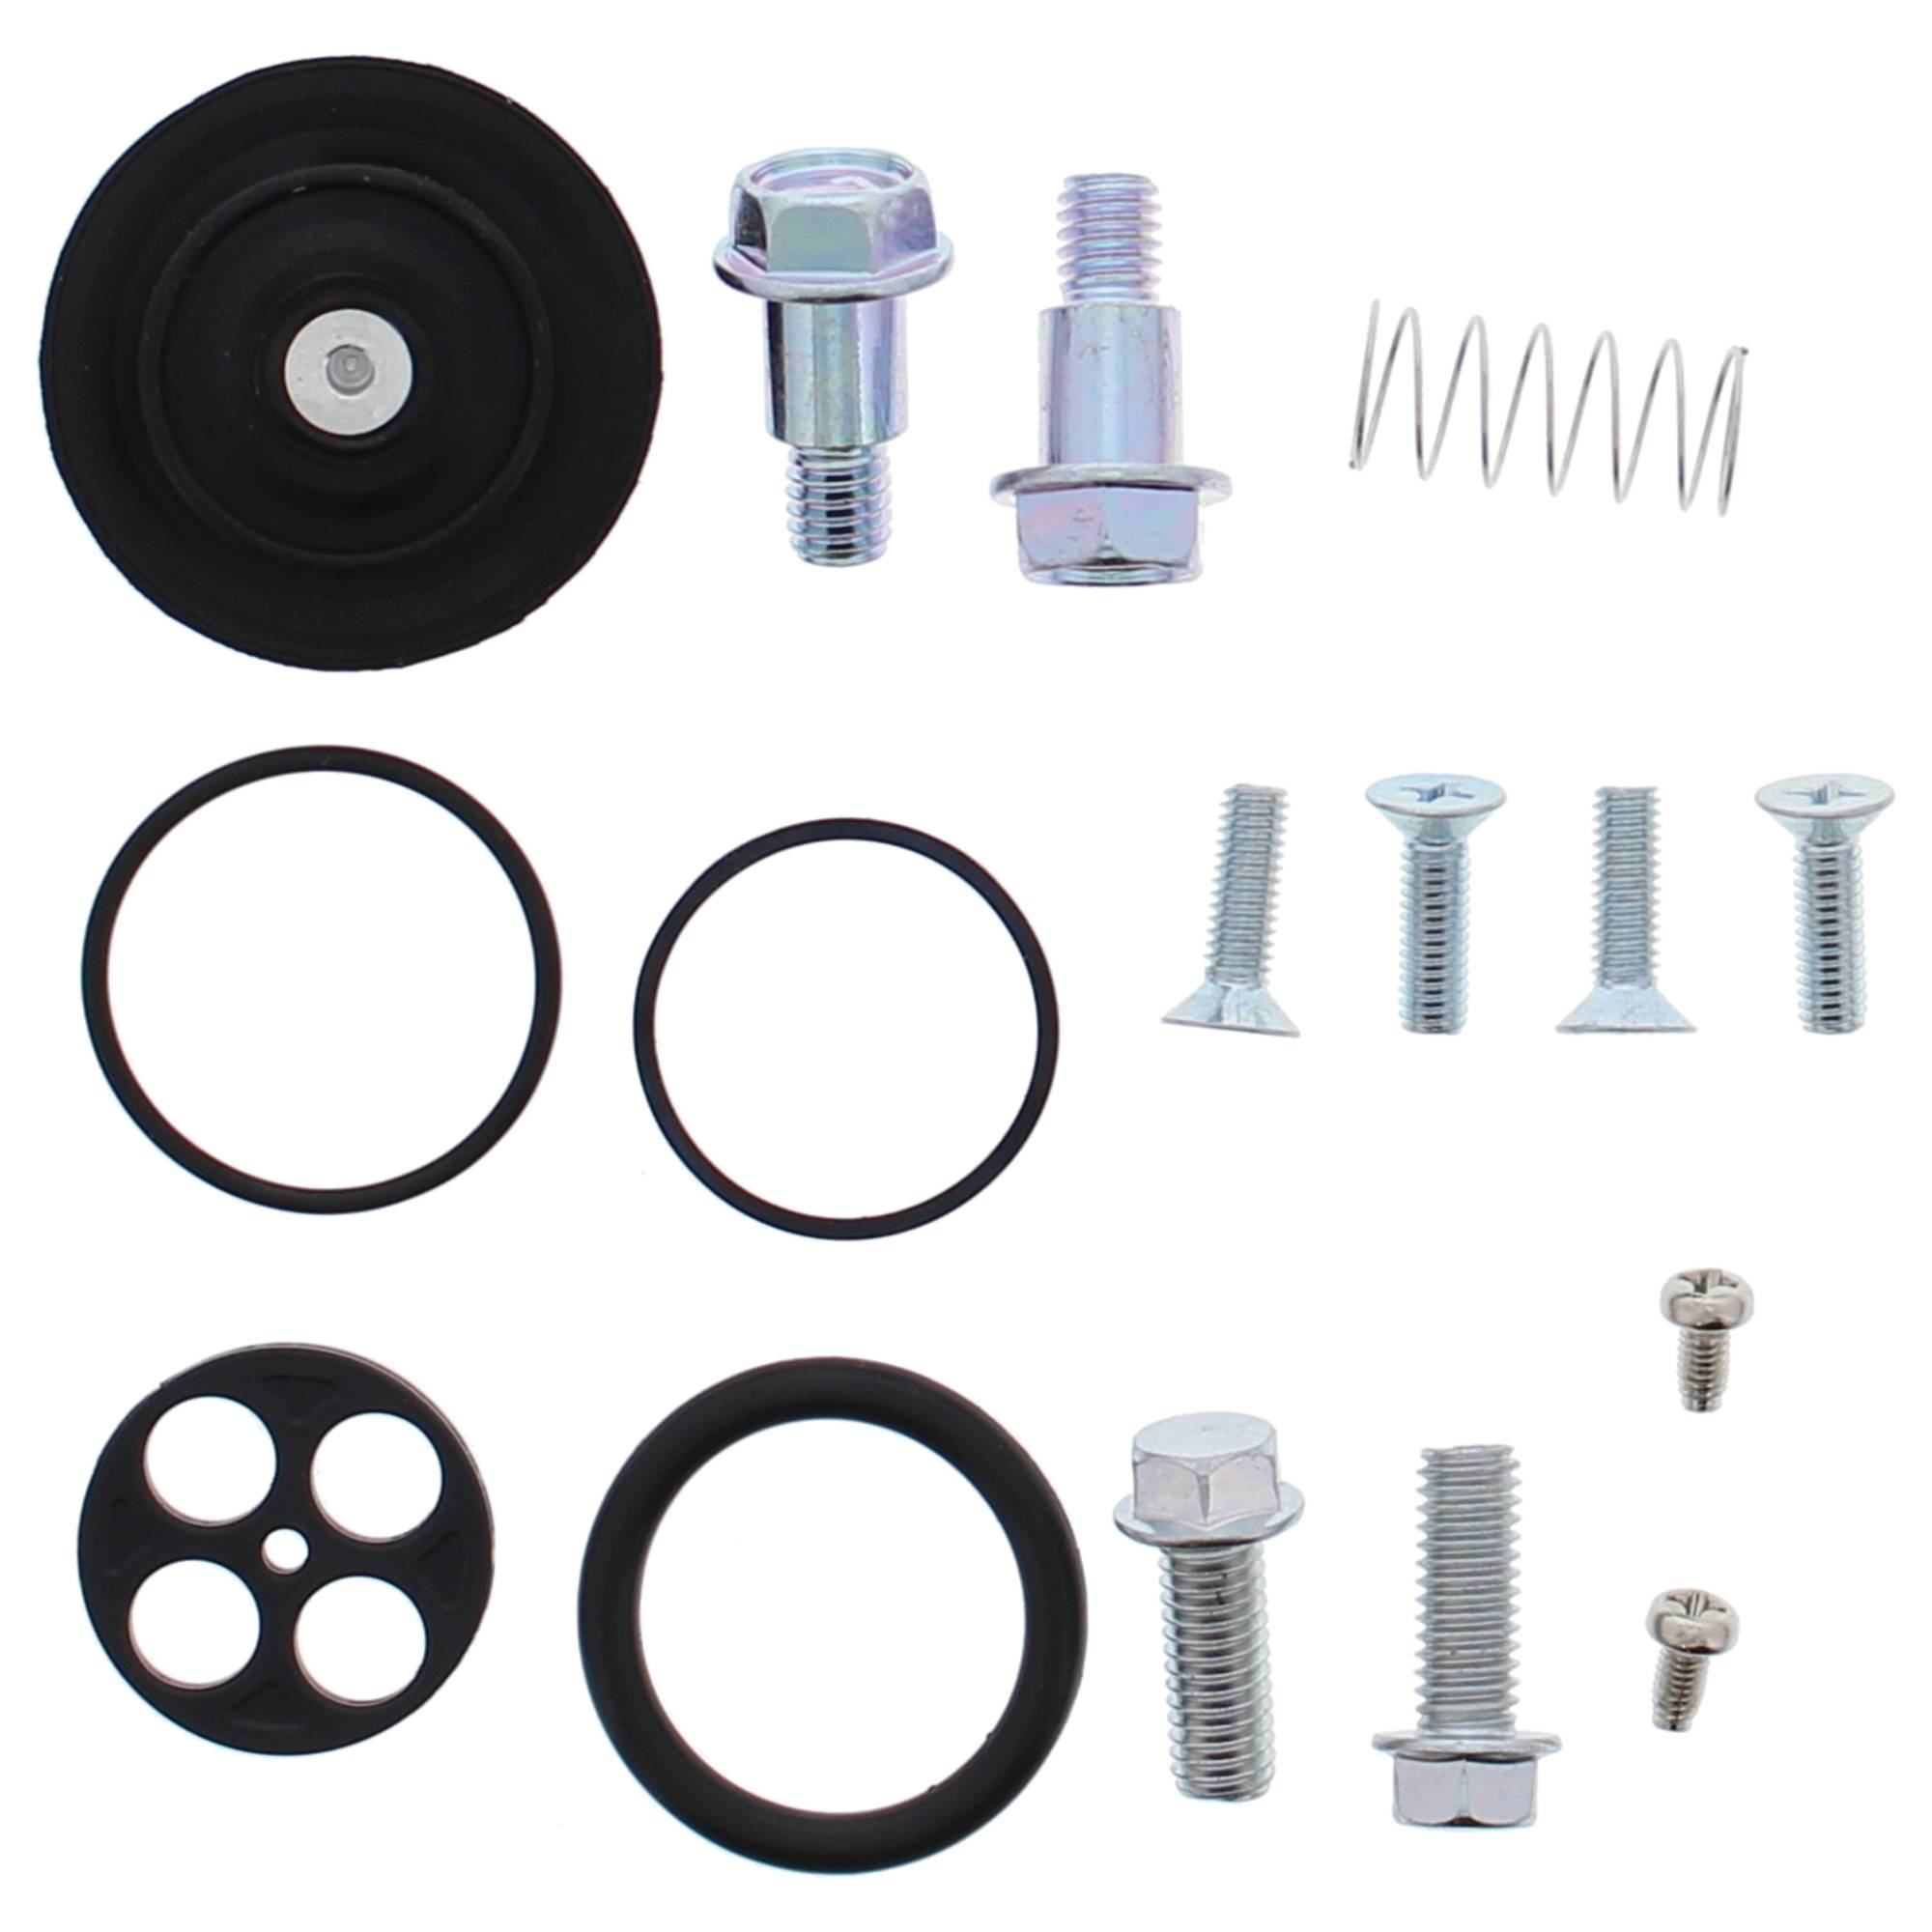 New All Balls 85-1027 Wheel Stud and Nut Kit Compatible With//Replacement For Kawasaki KVF650 Brute force 2005-2013 KVF700 Prairie 2004-2006 KVF650 I Brute force 2008 KVF650 Prairie 2002-2003